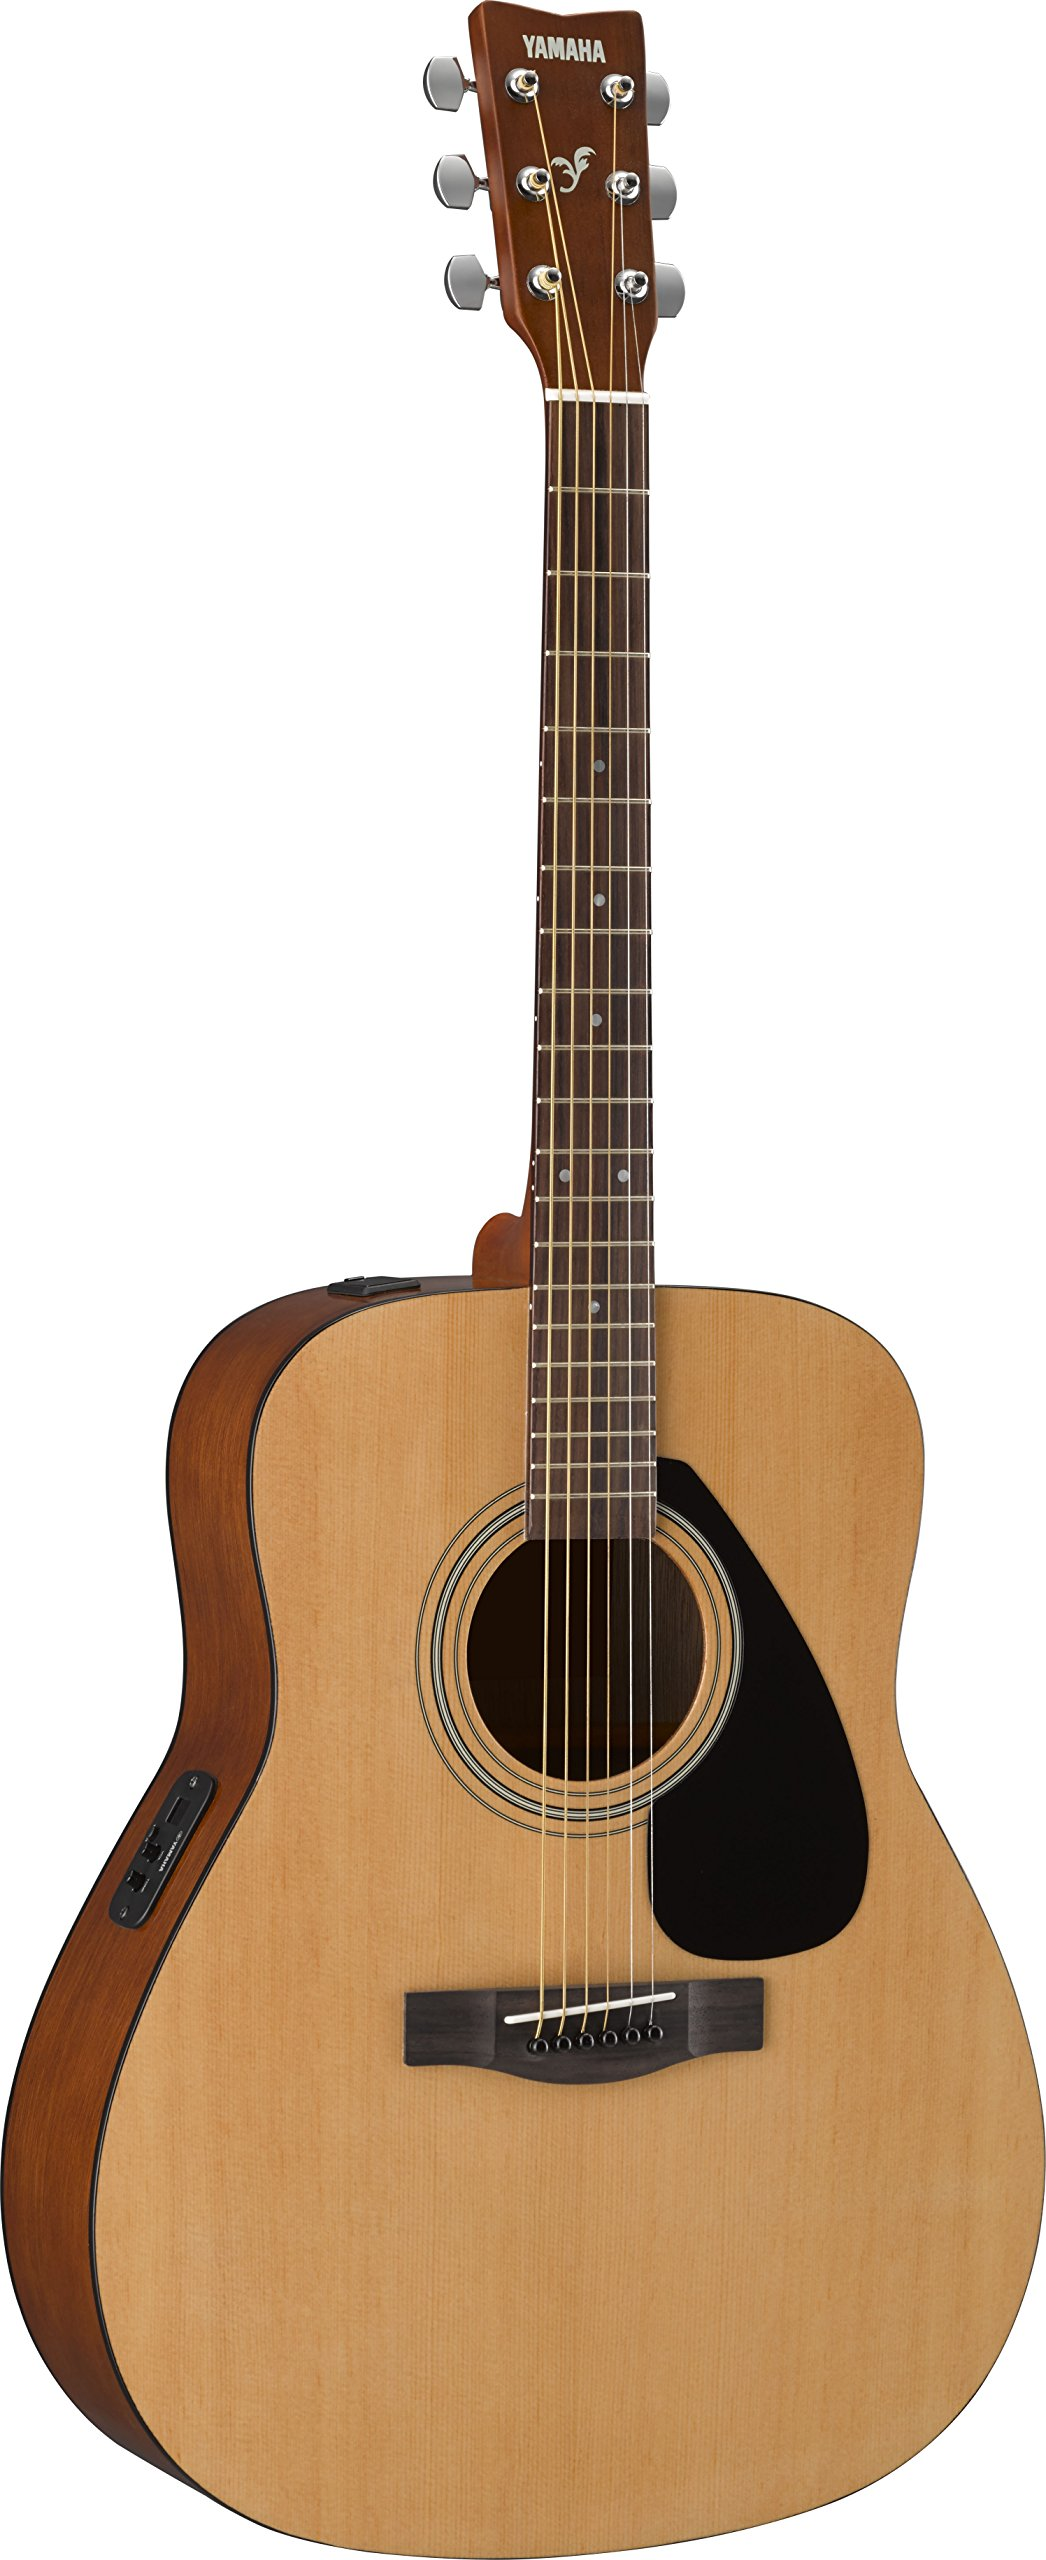 Yamaha Gfx310aii Electro Acoustic Guitar Buy Online In Pakistan At Desertcart Pk Productid 47939882